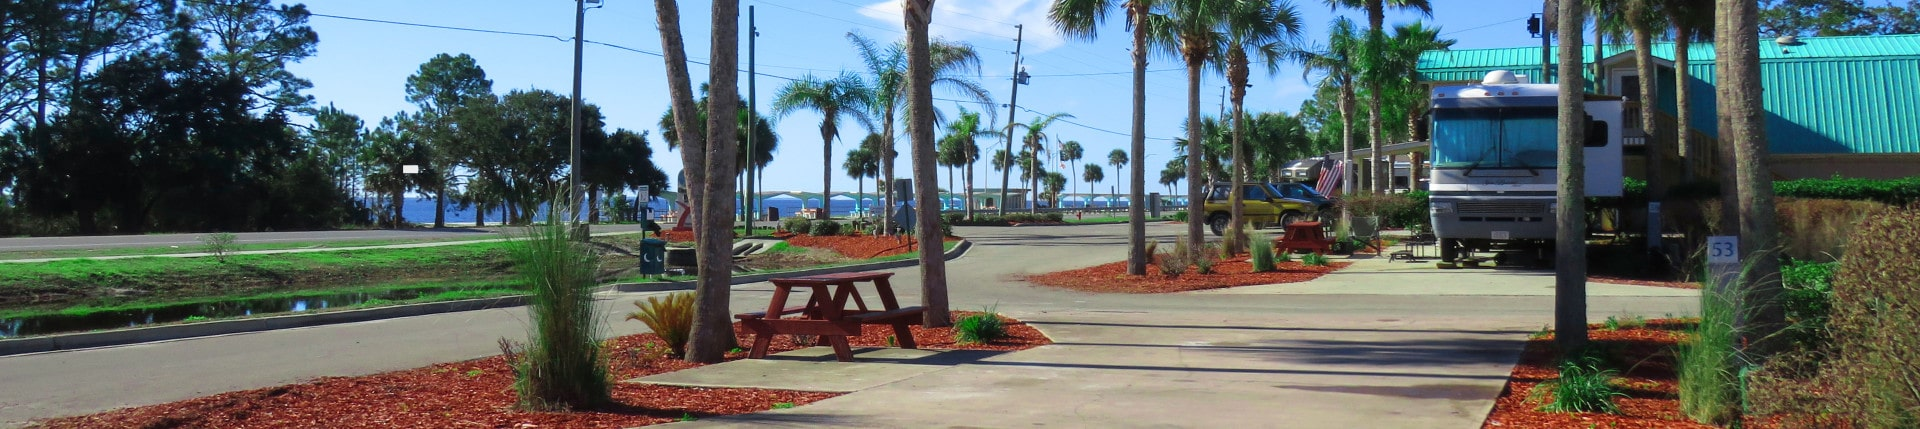 Contact Couple Walking Dog at Carrabelle Beach RV Resort - The RV Sites